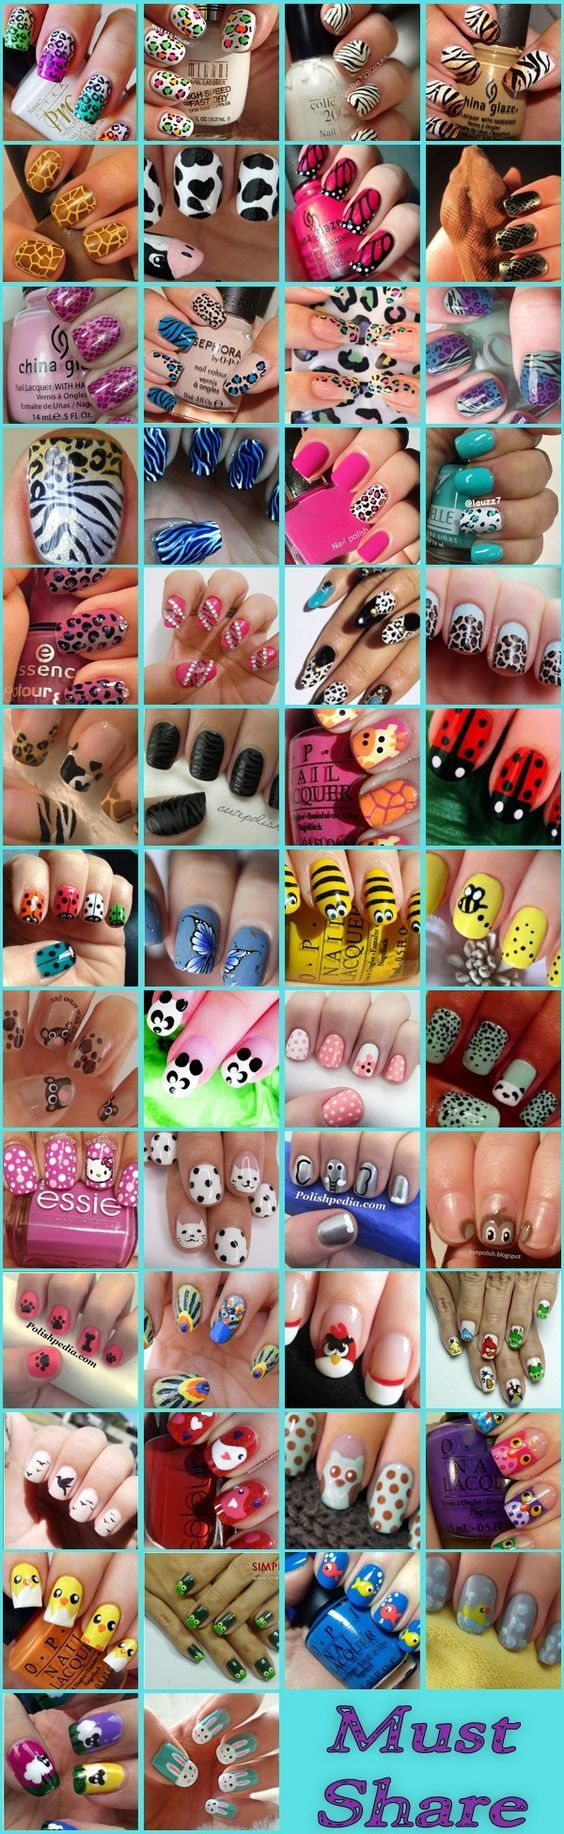 25 easy nail art designs tutorials for beginners 2018 update nail art designs for beginnersgo easy on yourself and start with these easy nail art designs for beginners so all set to get started solutioingenieria Choice Image